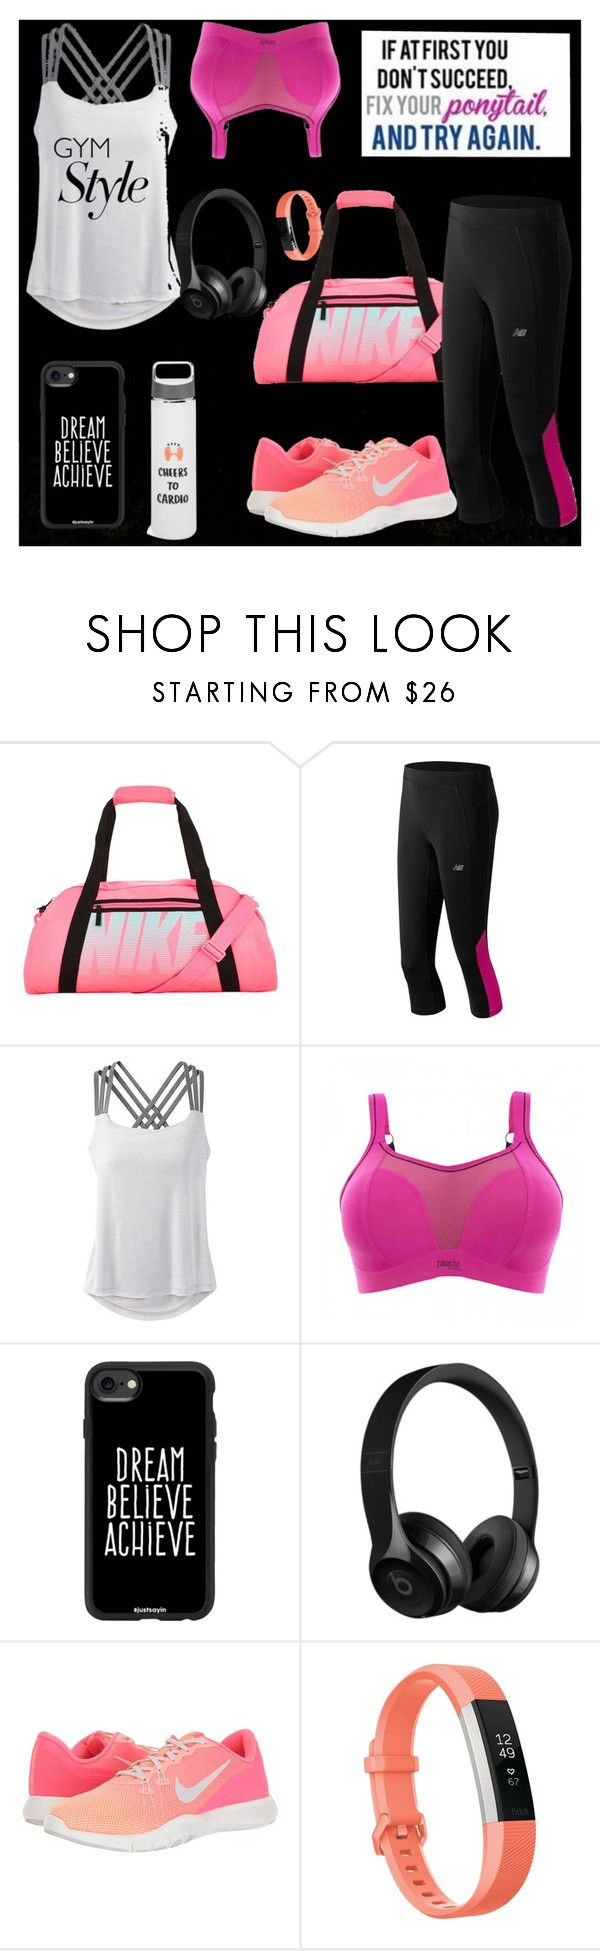 """""""#gymStyle in black and pink.. start your day with style ^_^"""" by mrunalini-hazari ❤ liked on Polyvore featuring NIKE, New Balance, prAna, Panache, Casetify, Fitbit and Celebrate Shop"""